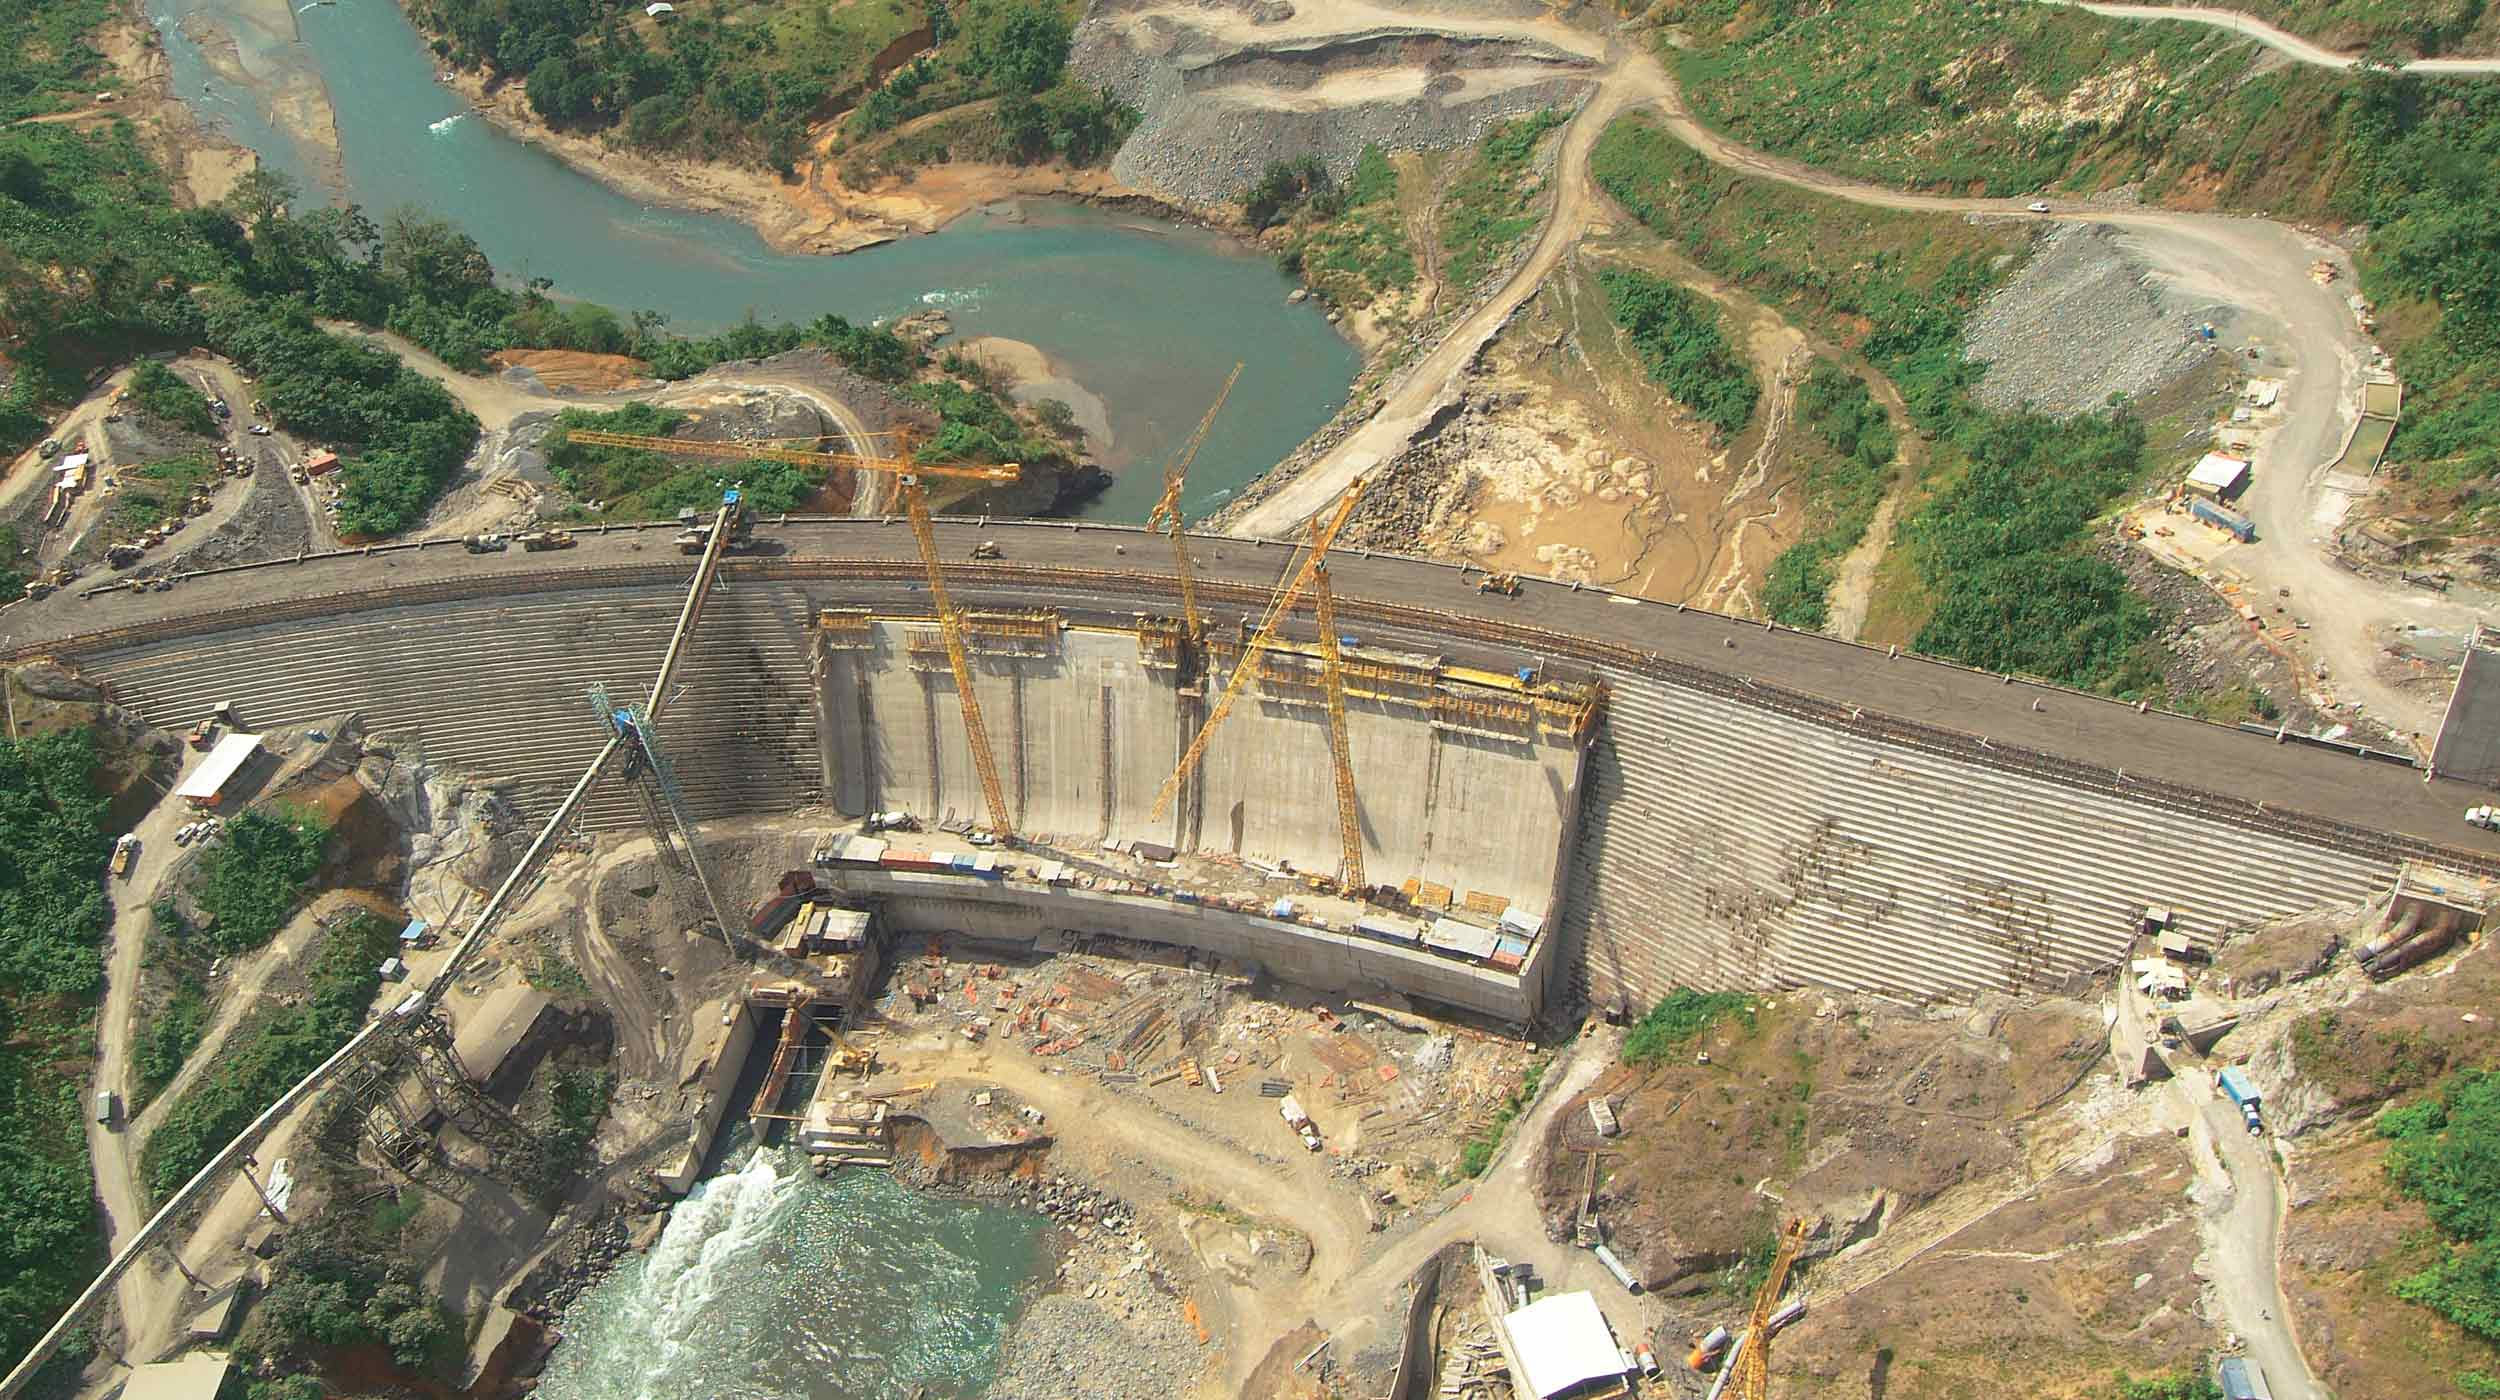 This large project, located in the Panamanian province of Bocas del Toro, includes in its main phase the dam of the future reservoir in the Changuinola River.